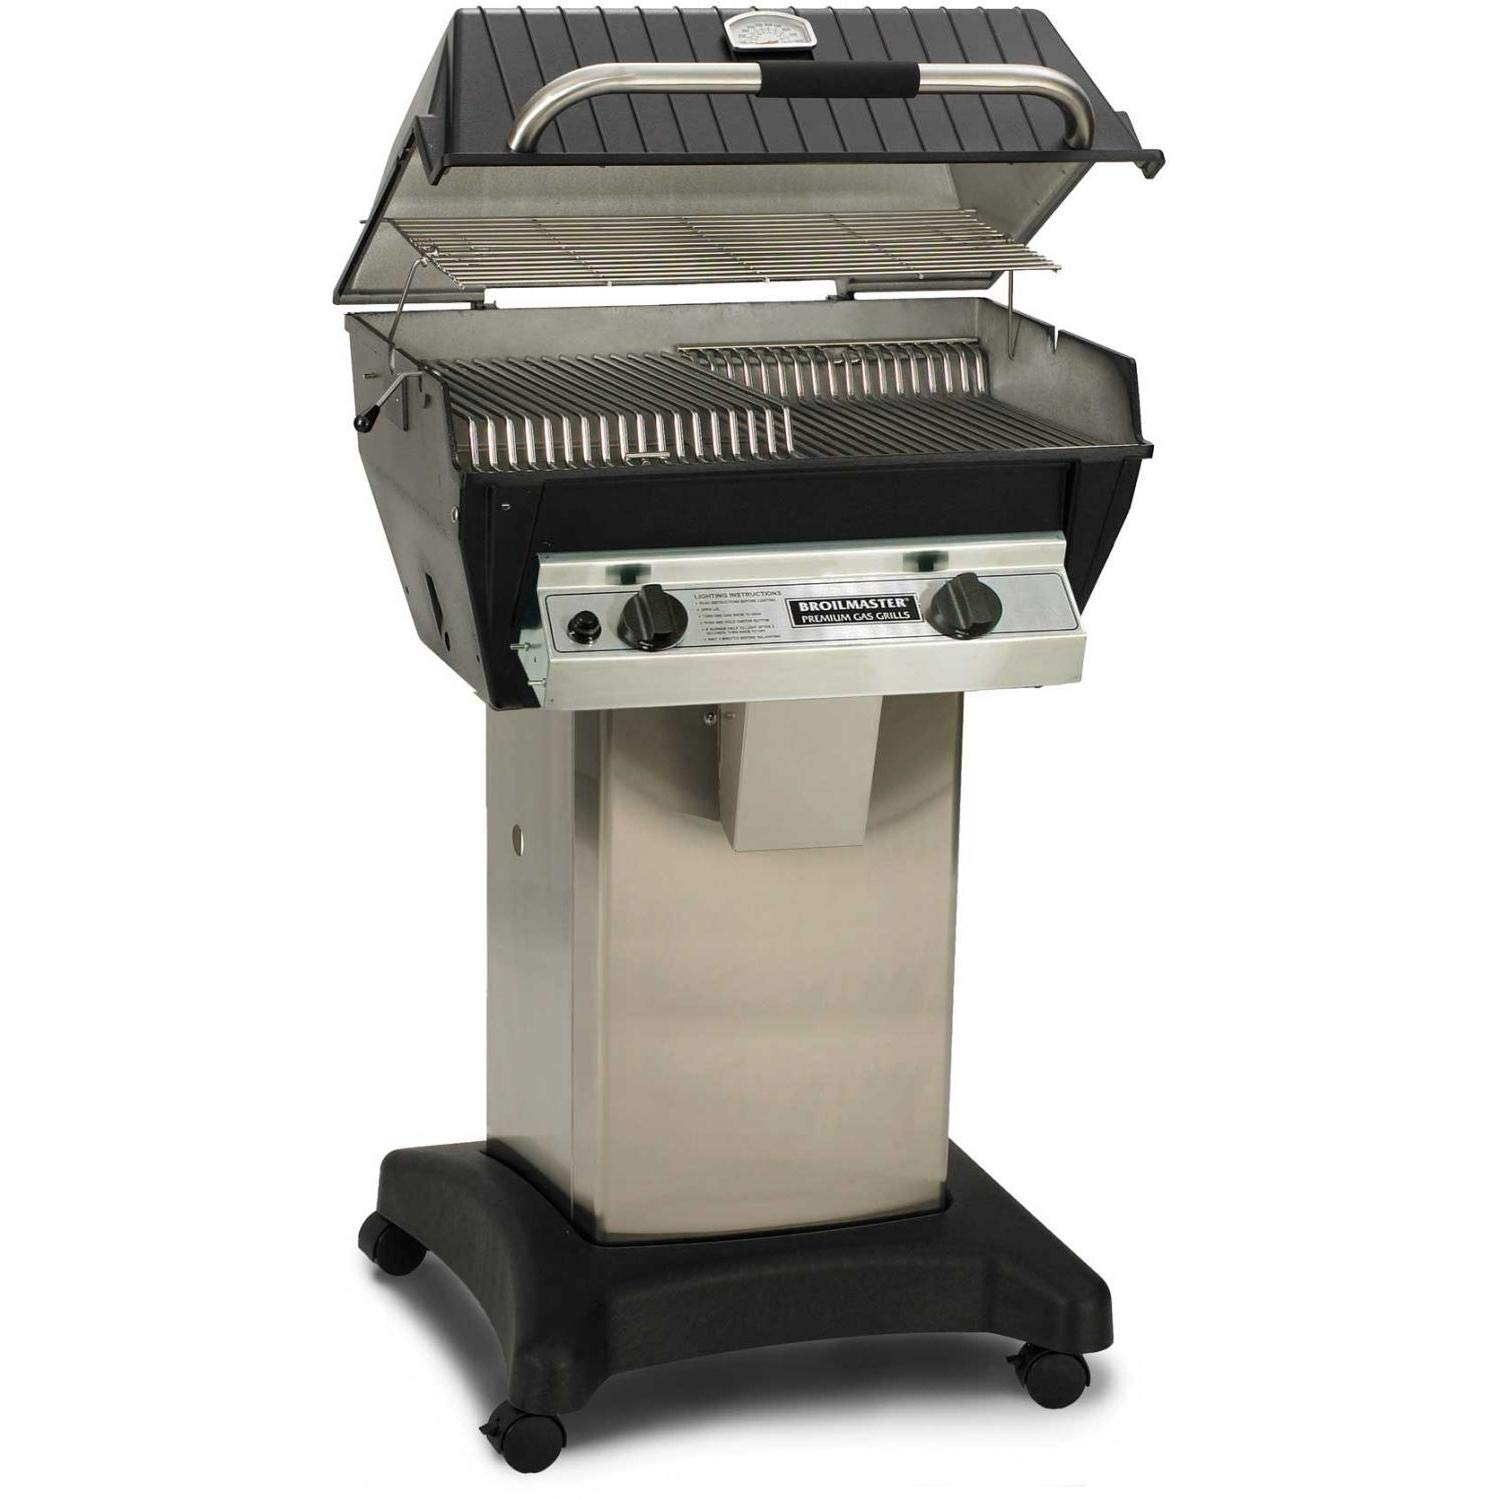 Broil master R3 Infrared Propane Gas Grill